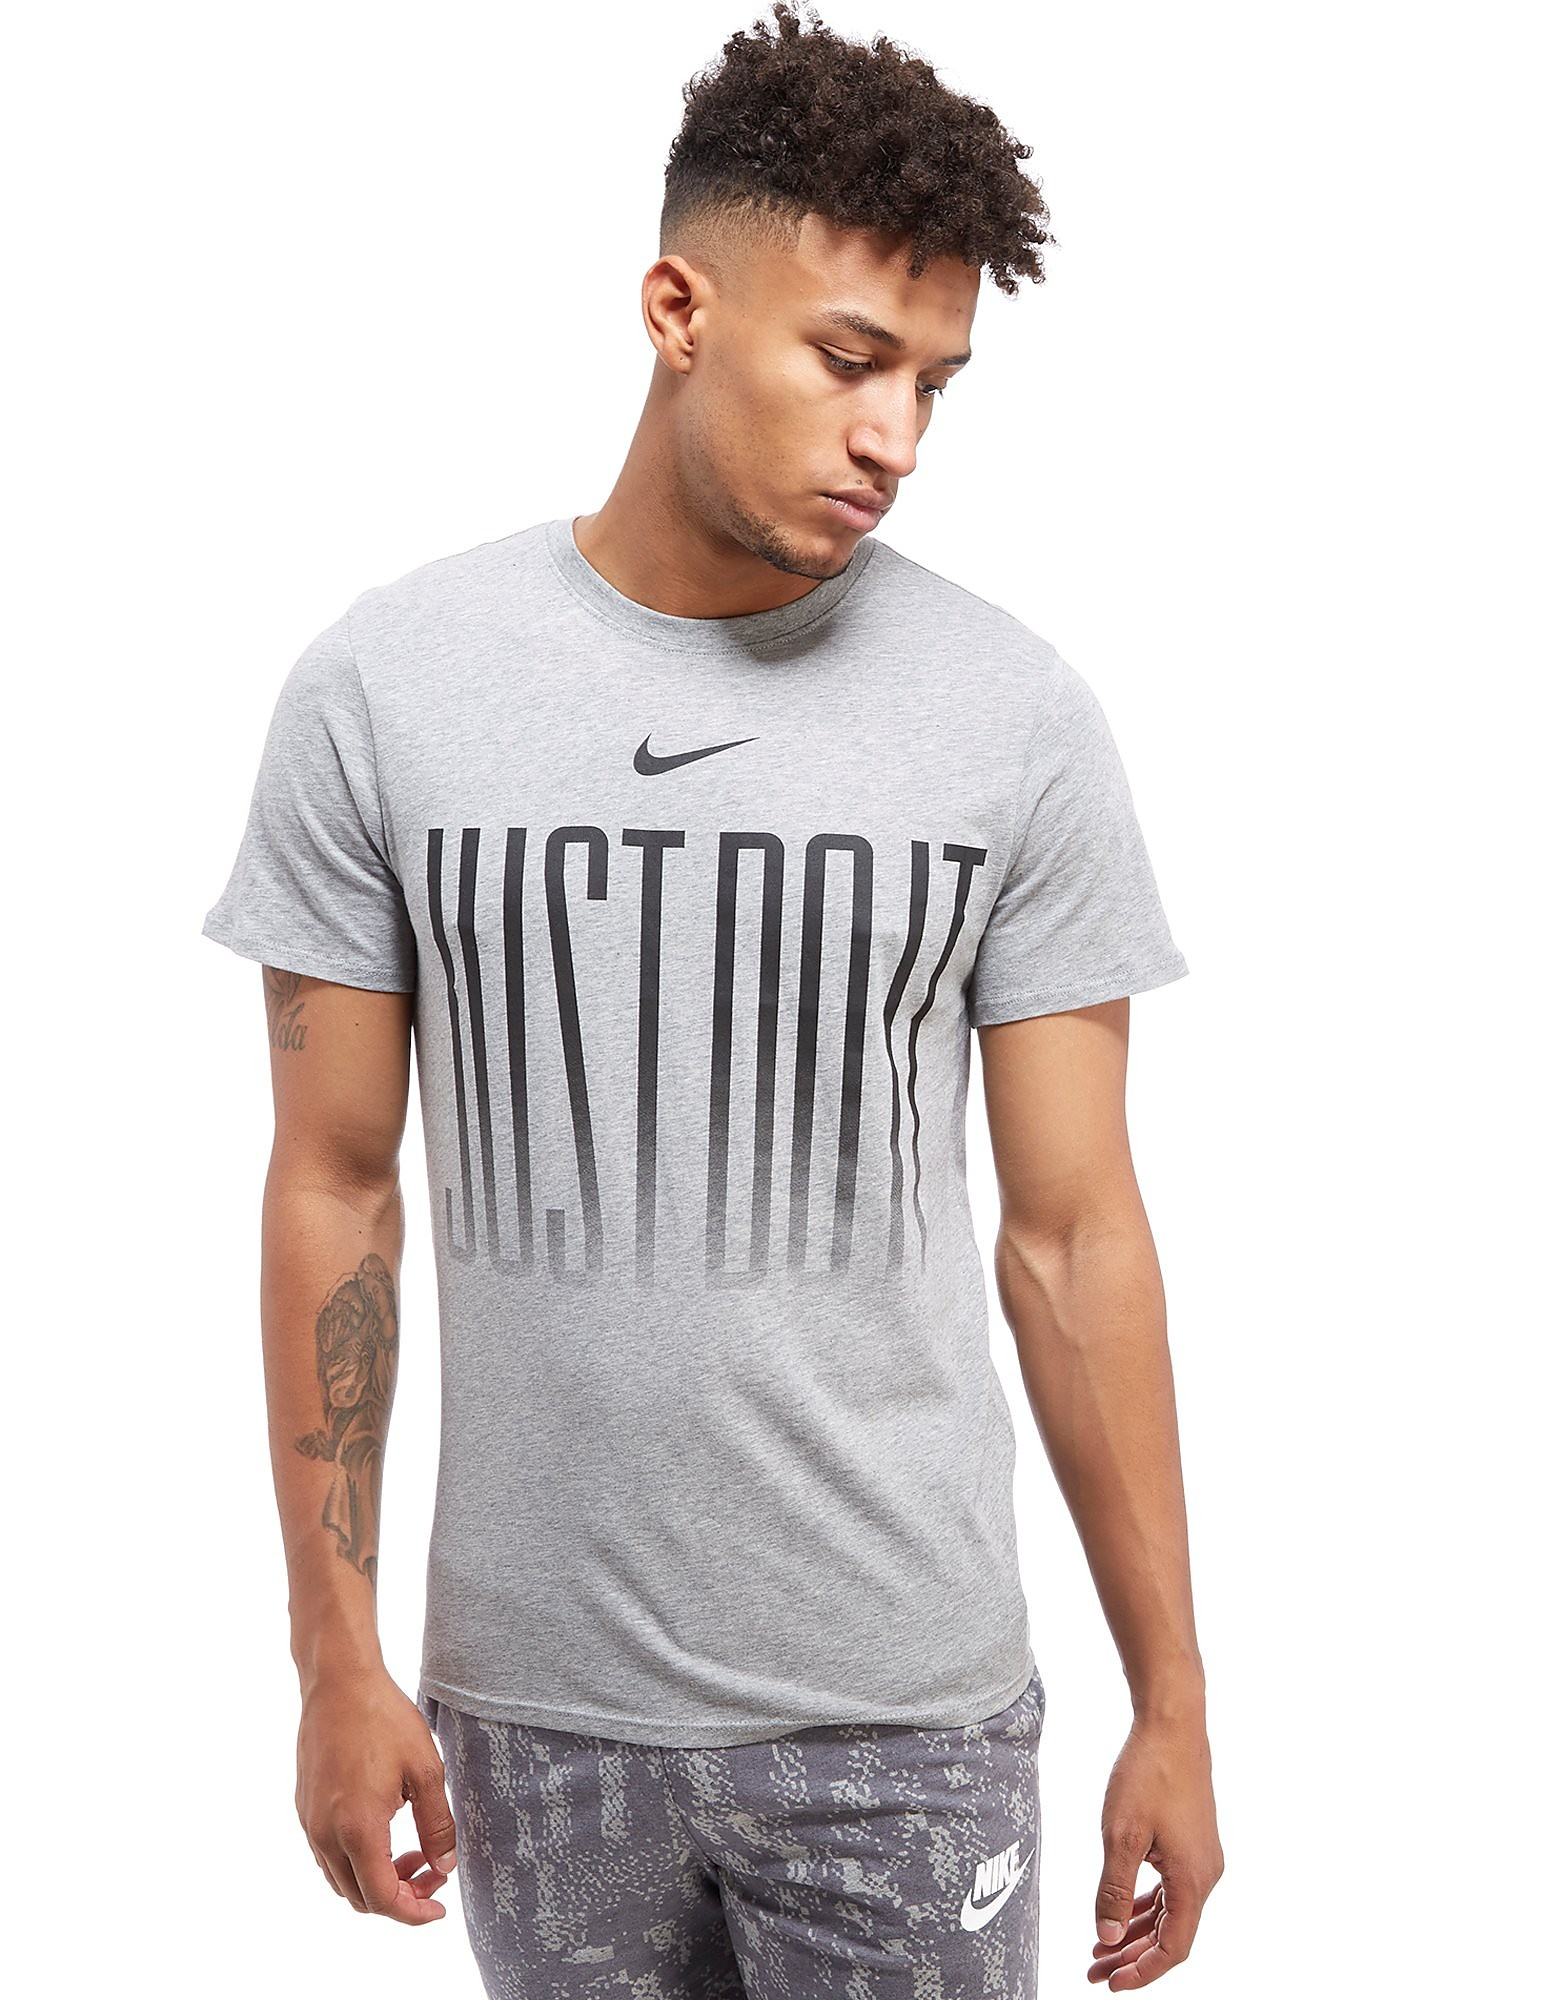 Nike Futura Just Do It T-Shirt